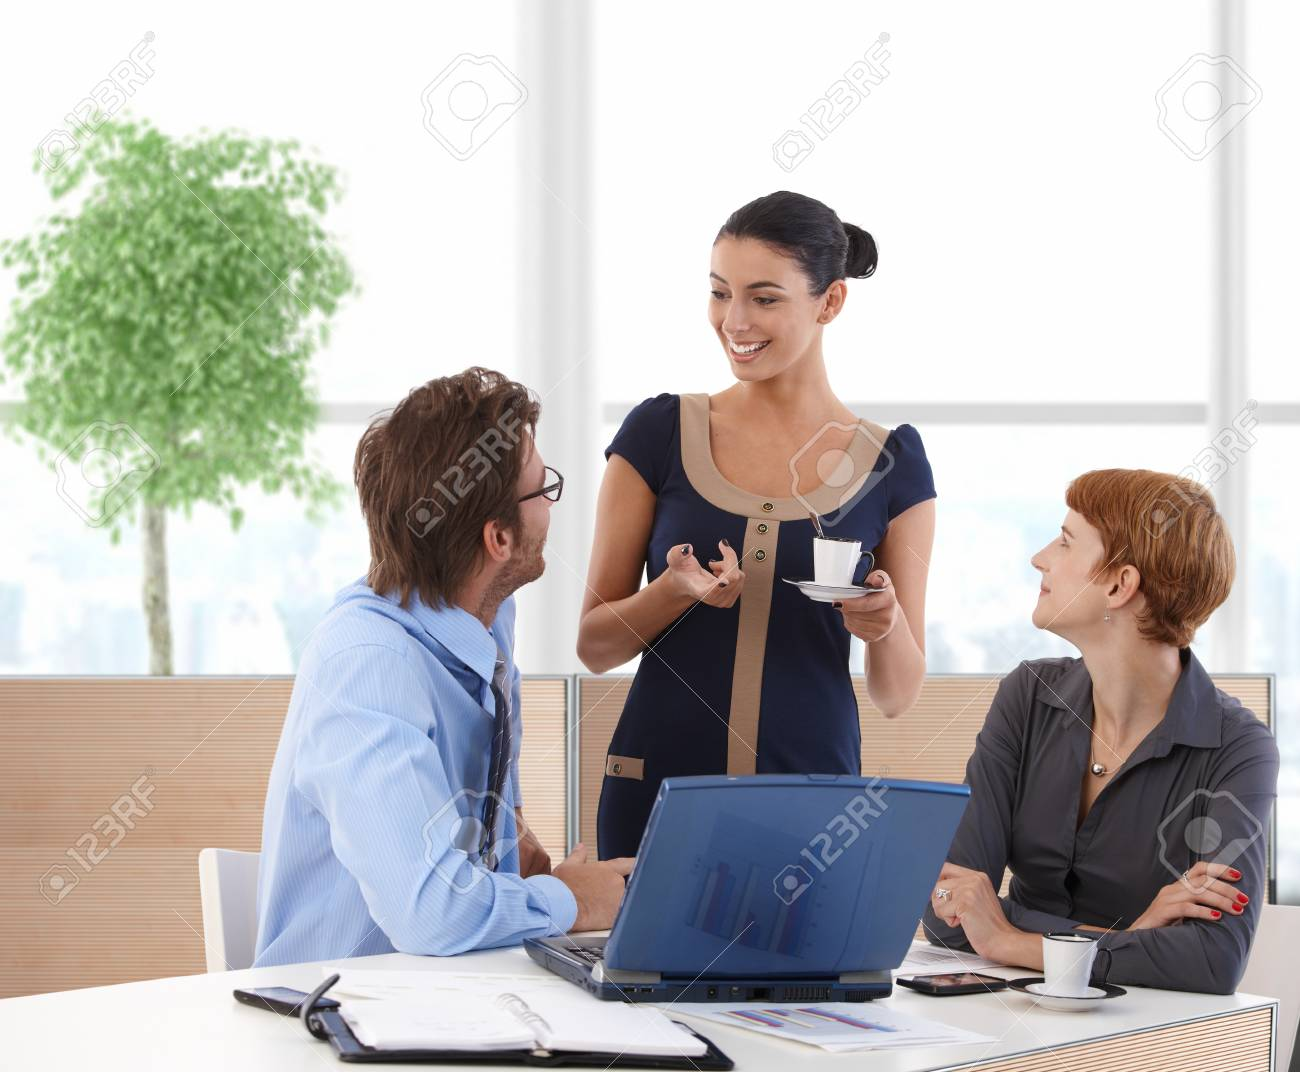 Businesspeople talking in business hall sitting at desk using laptop. Stock Photo - 23413616